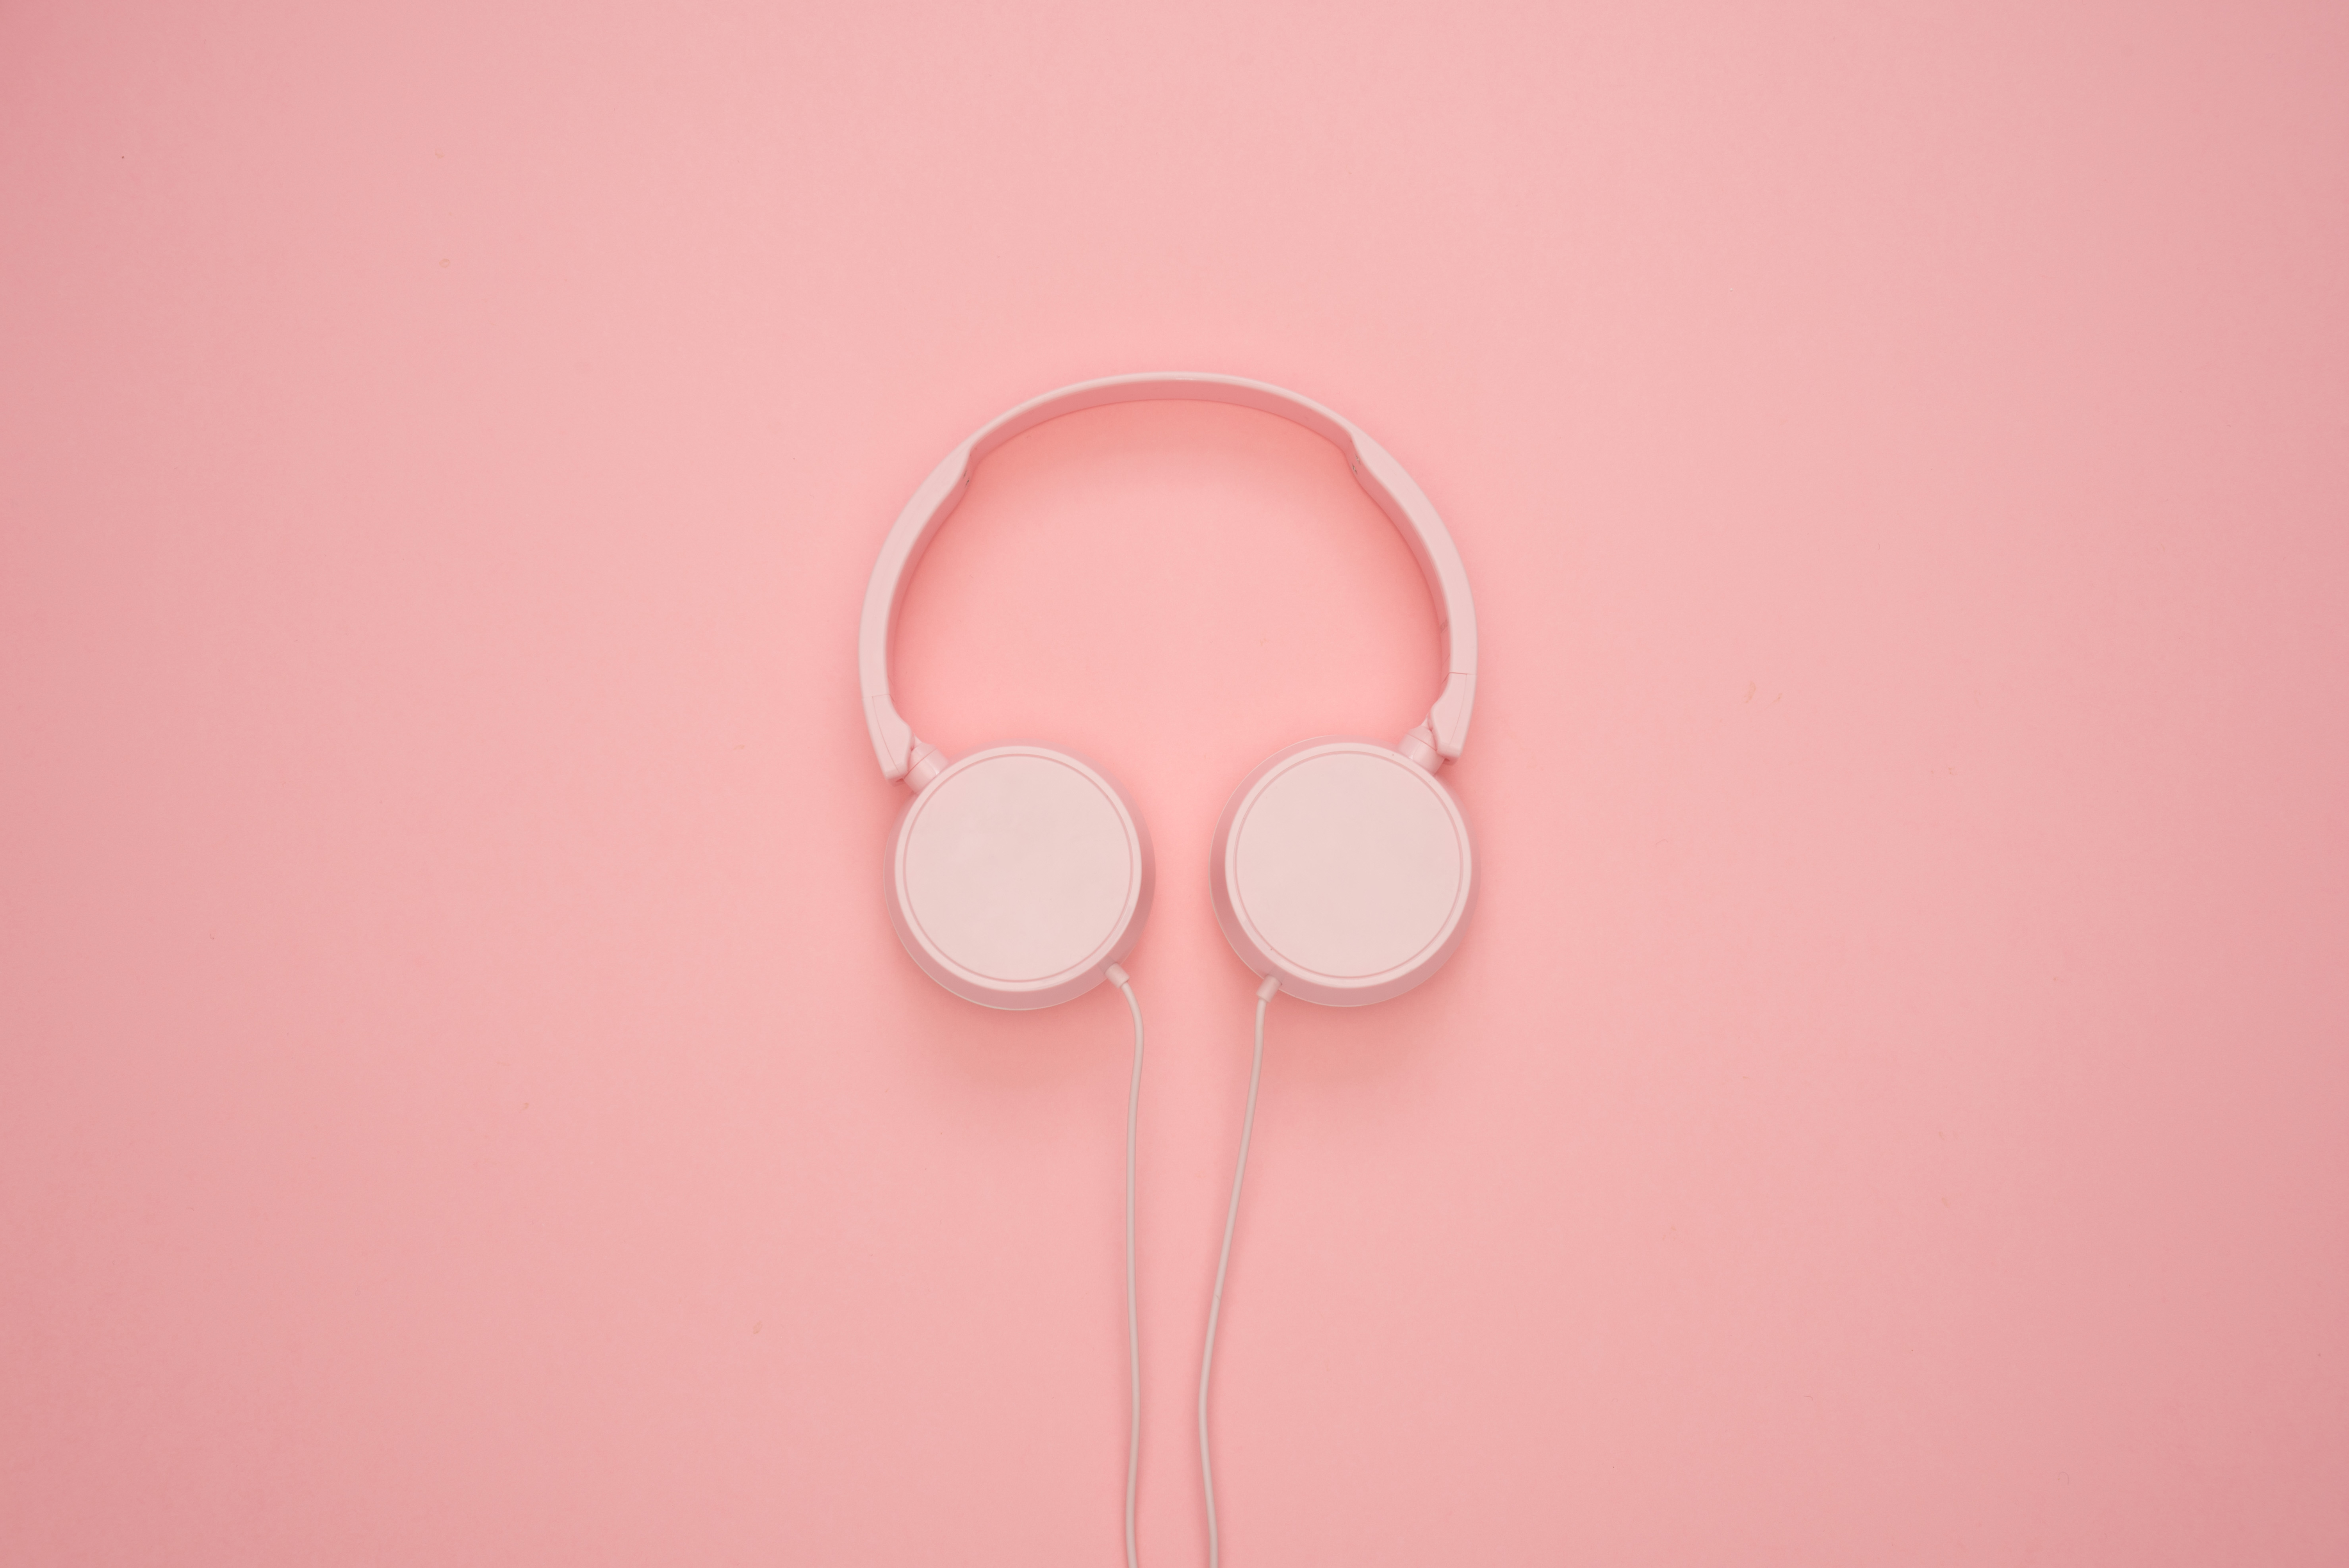 Iphone 6 earphones pink - earphones iphone 8 white